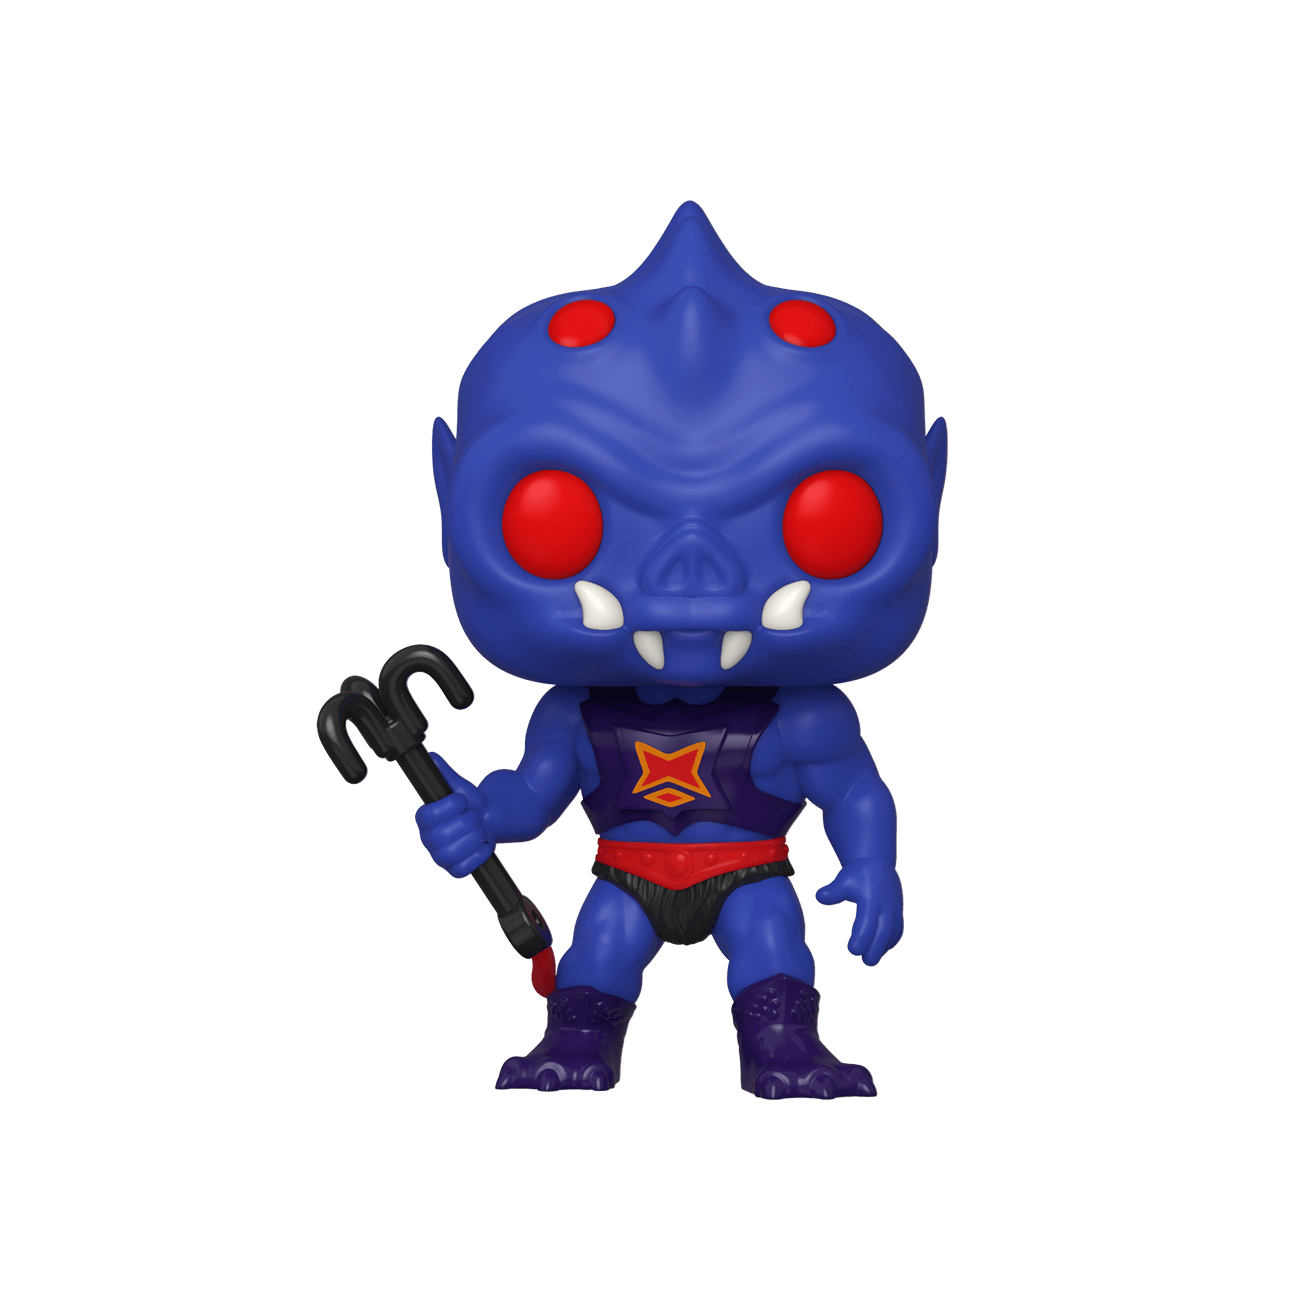 Funko Pop! Webstor (Masters of the Universe)